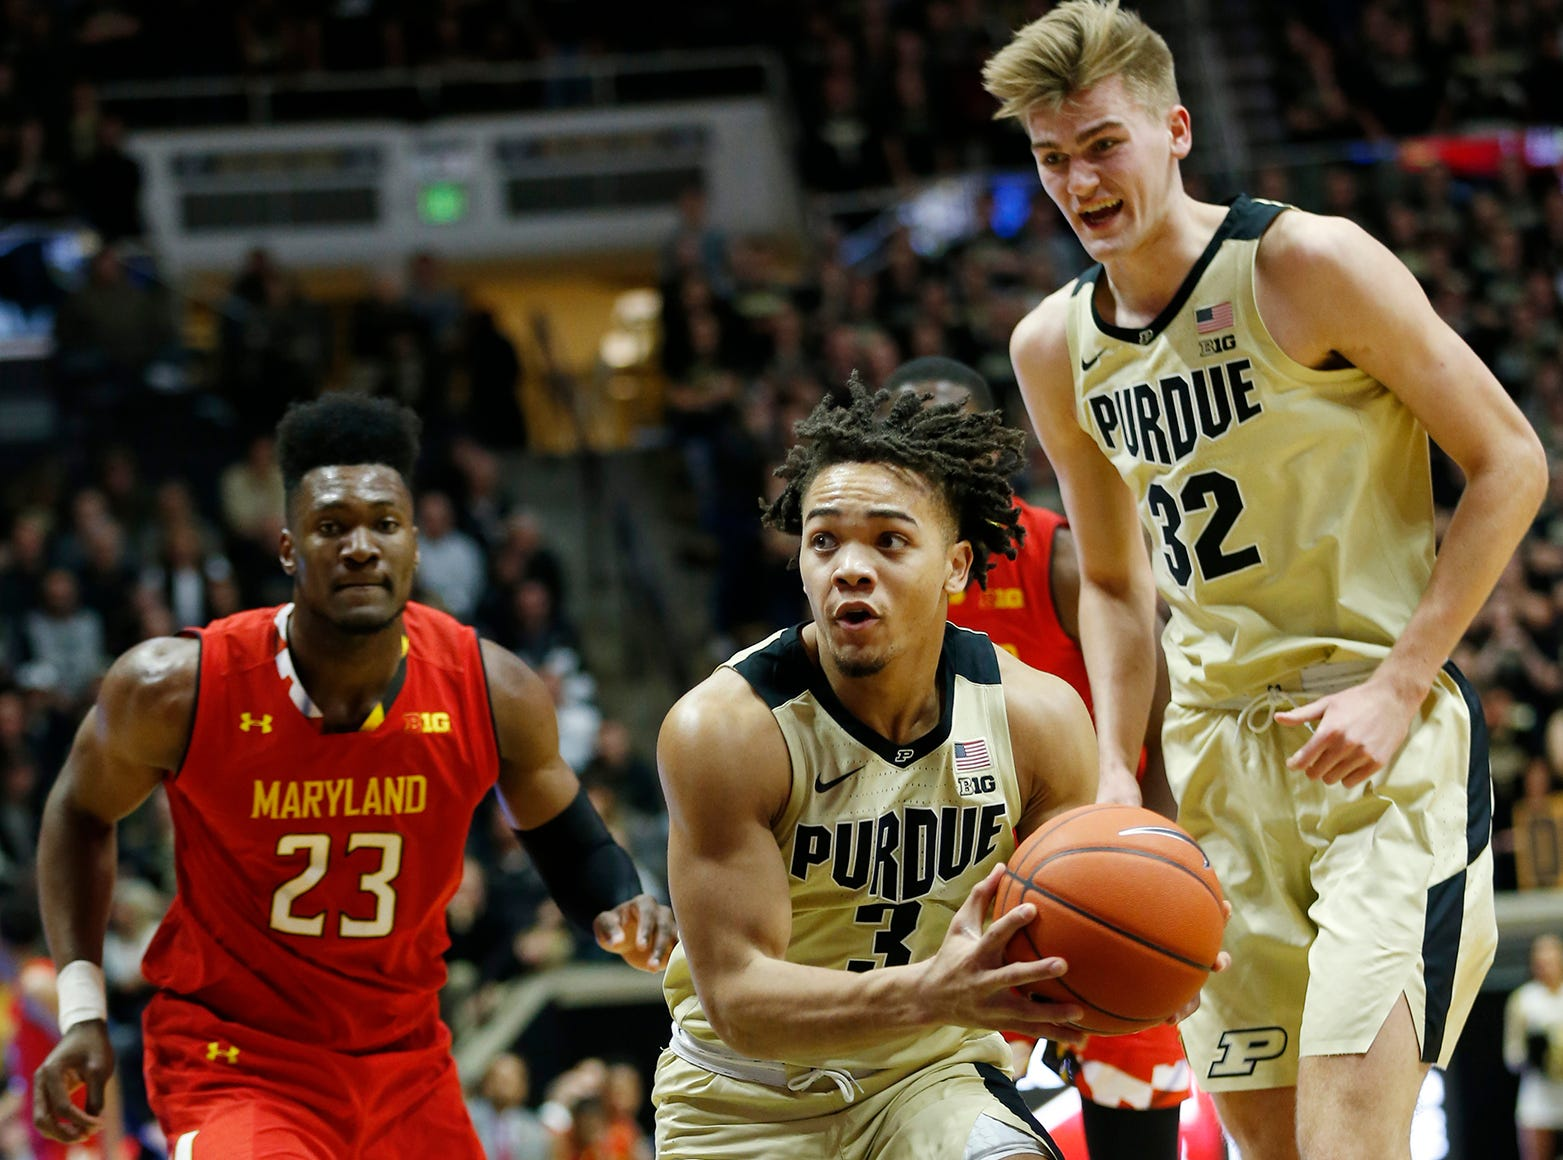 Carsen Edwards of Purdue with a drive to the basket against Maryland Thursday, December 6, 2018, at Mackey Arena. Purdue defeated Maryland 62-60.